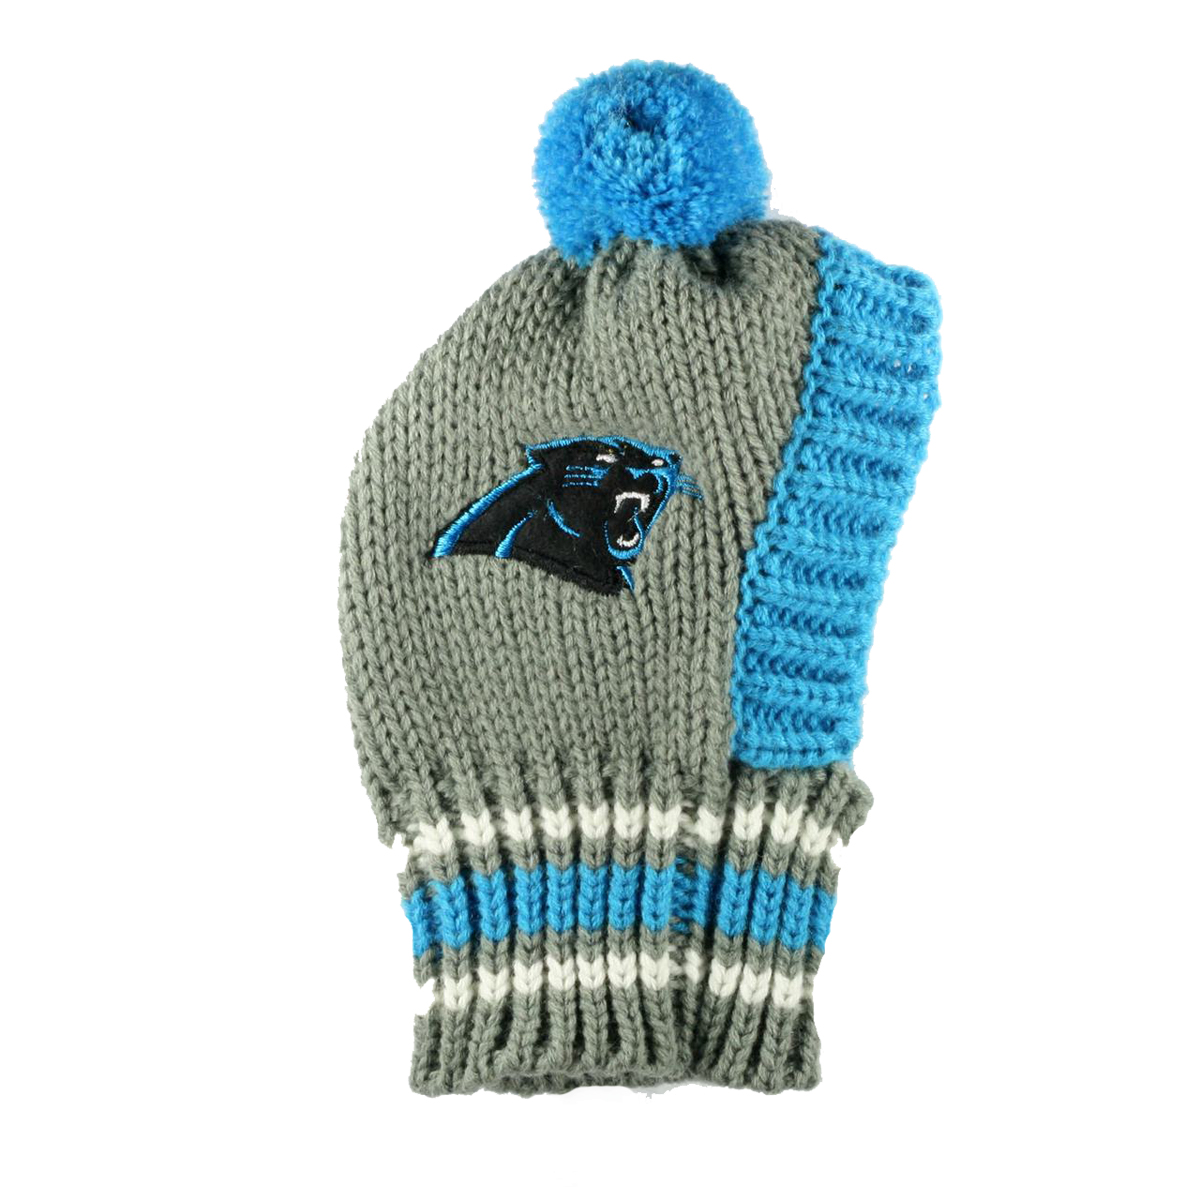 Knitting Patterns For Dogs Hats : Carolina Panthers Knit Dog Hat BaxterBoo